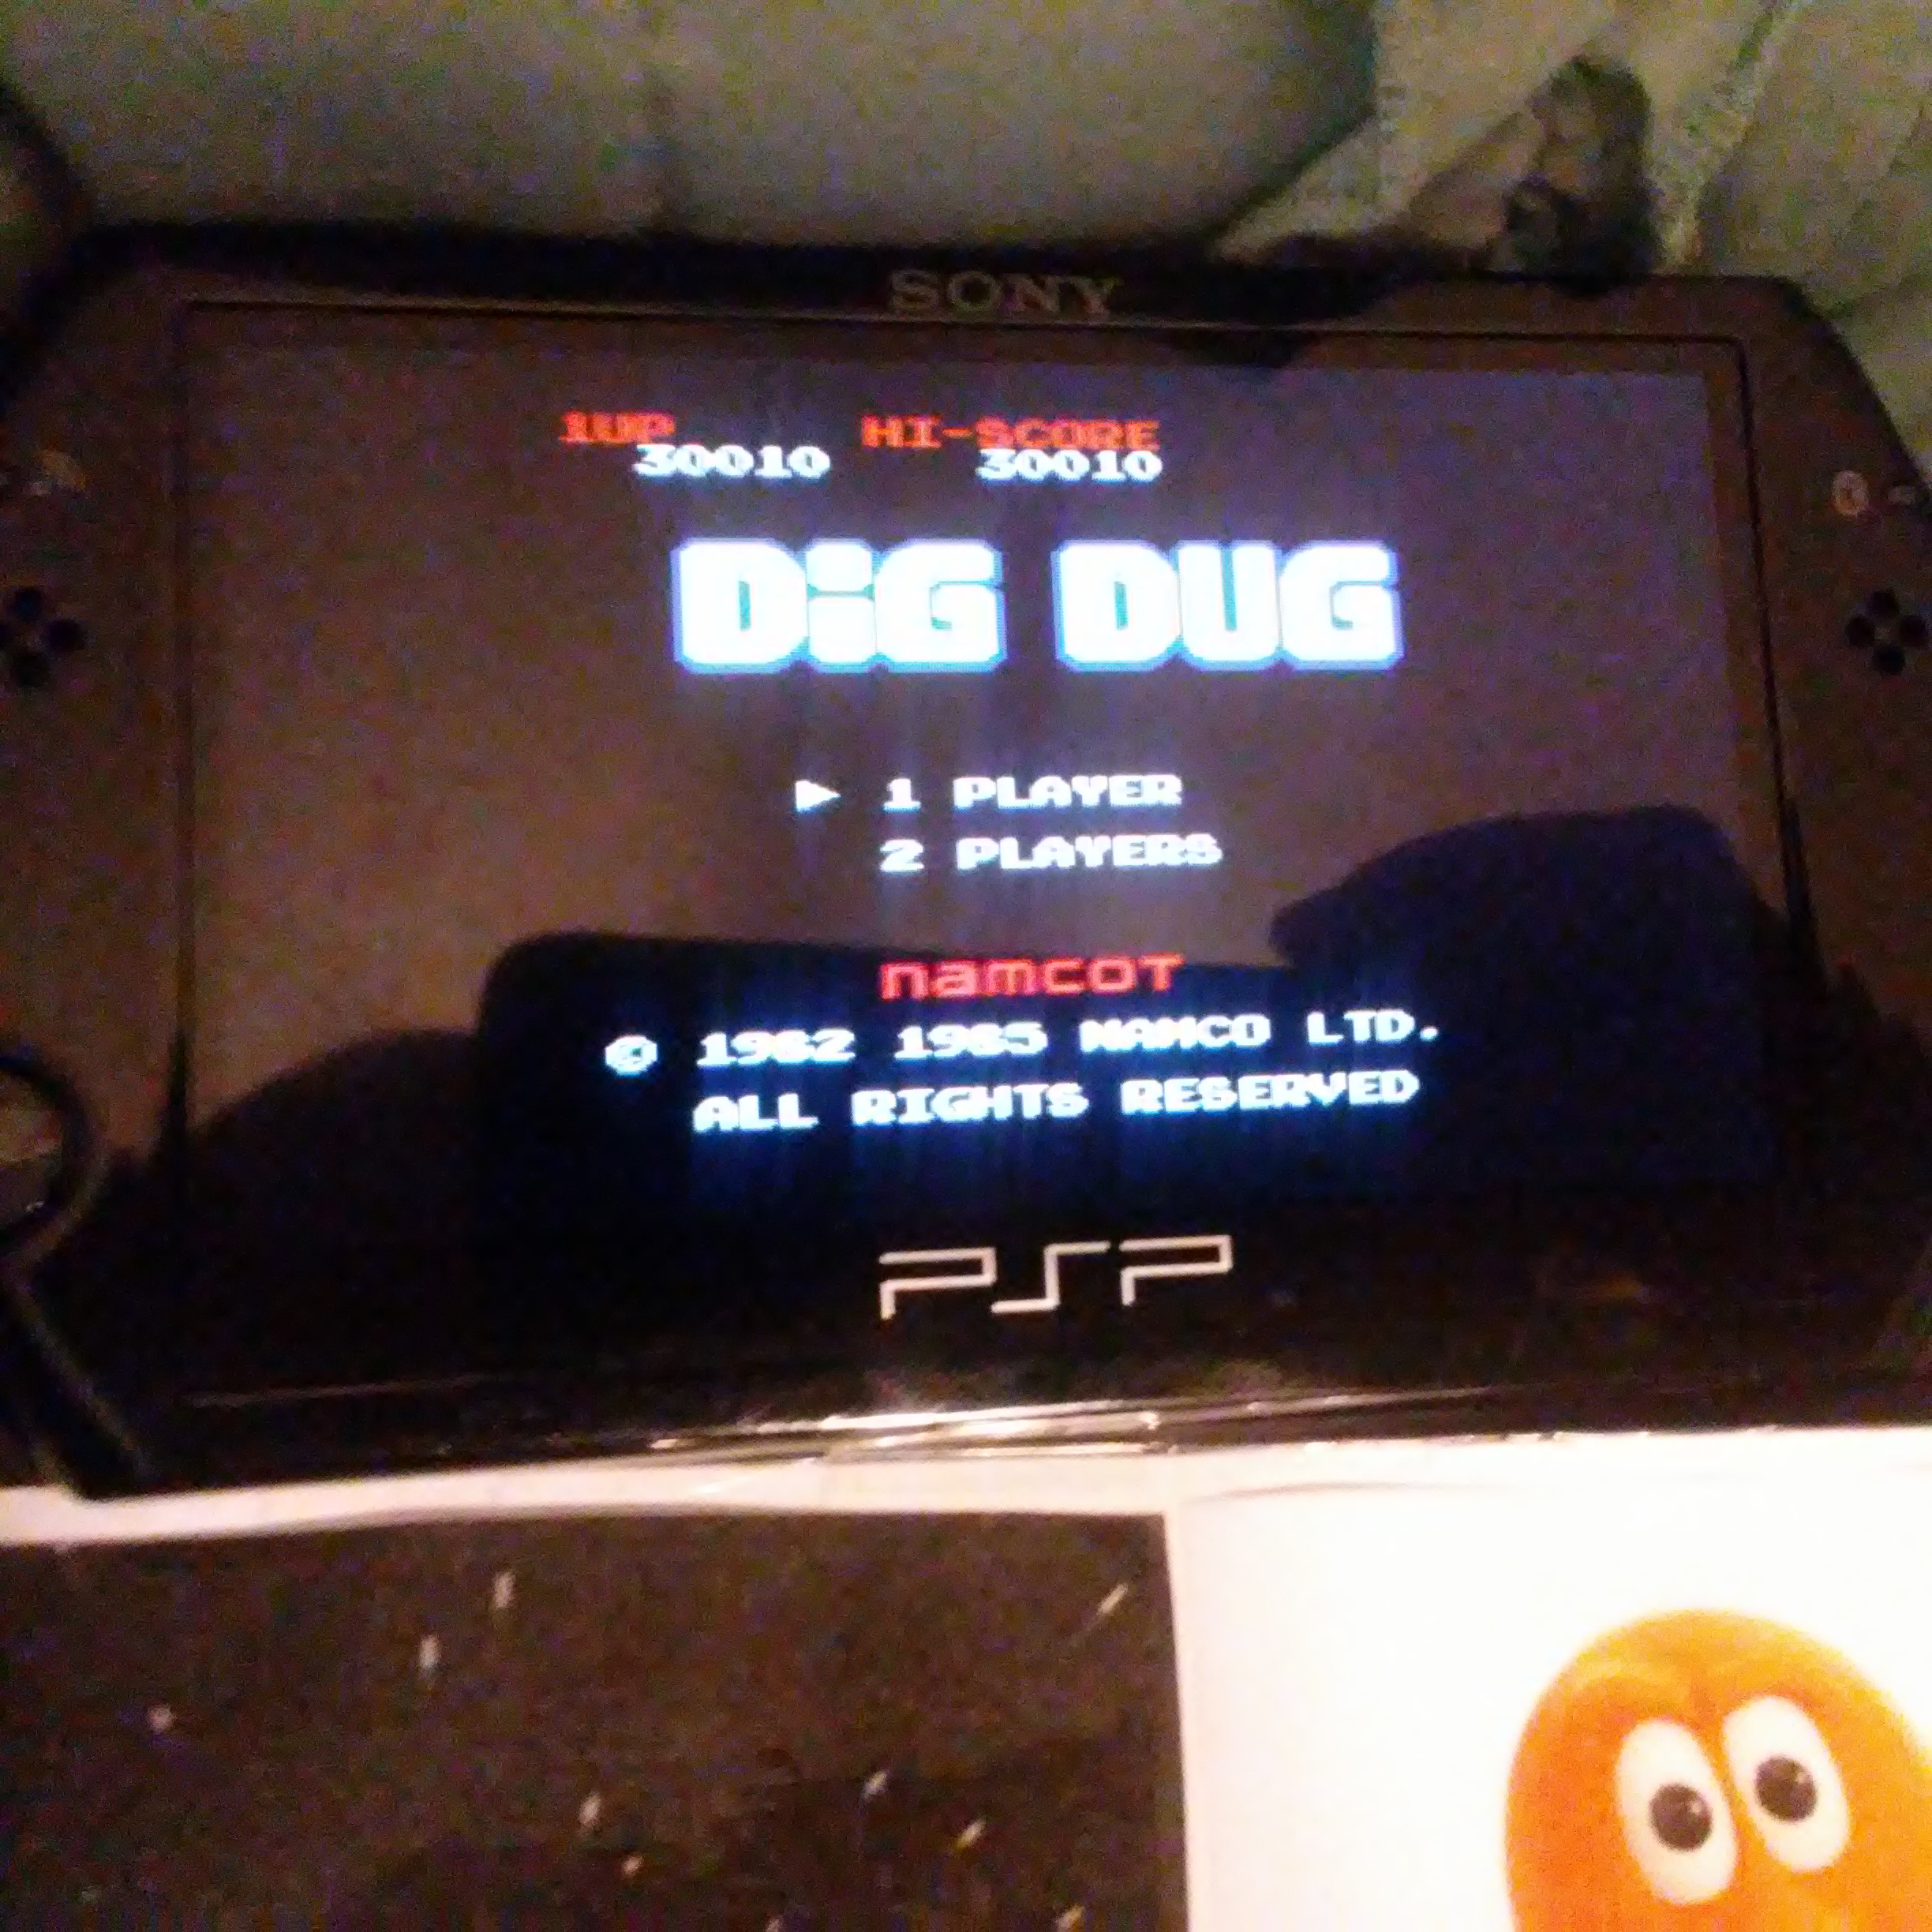 Pjsteele: Dig Dug (NES/Famicom Emulated) 30,010 points on 2018-02-07 20:54:15